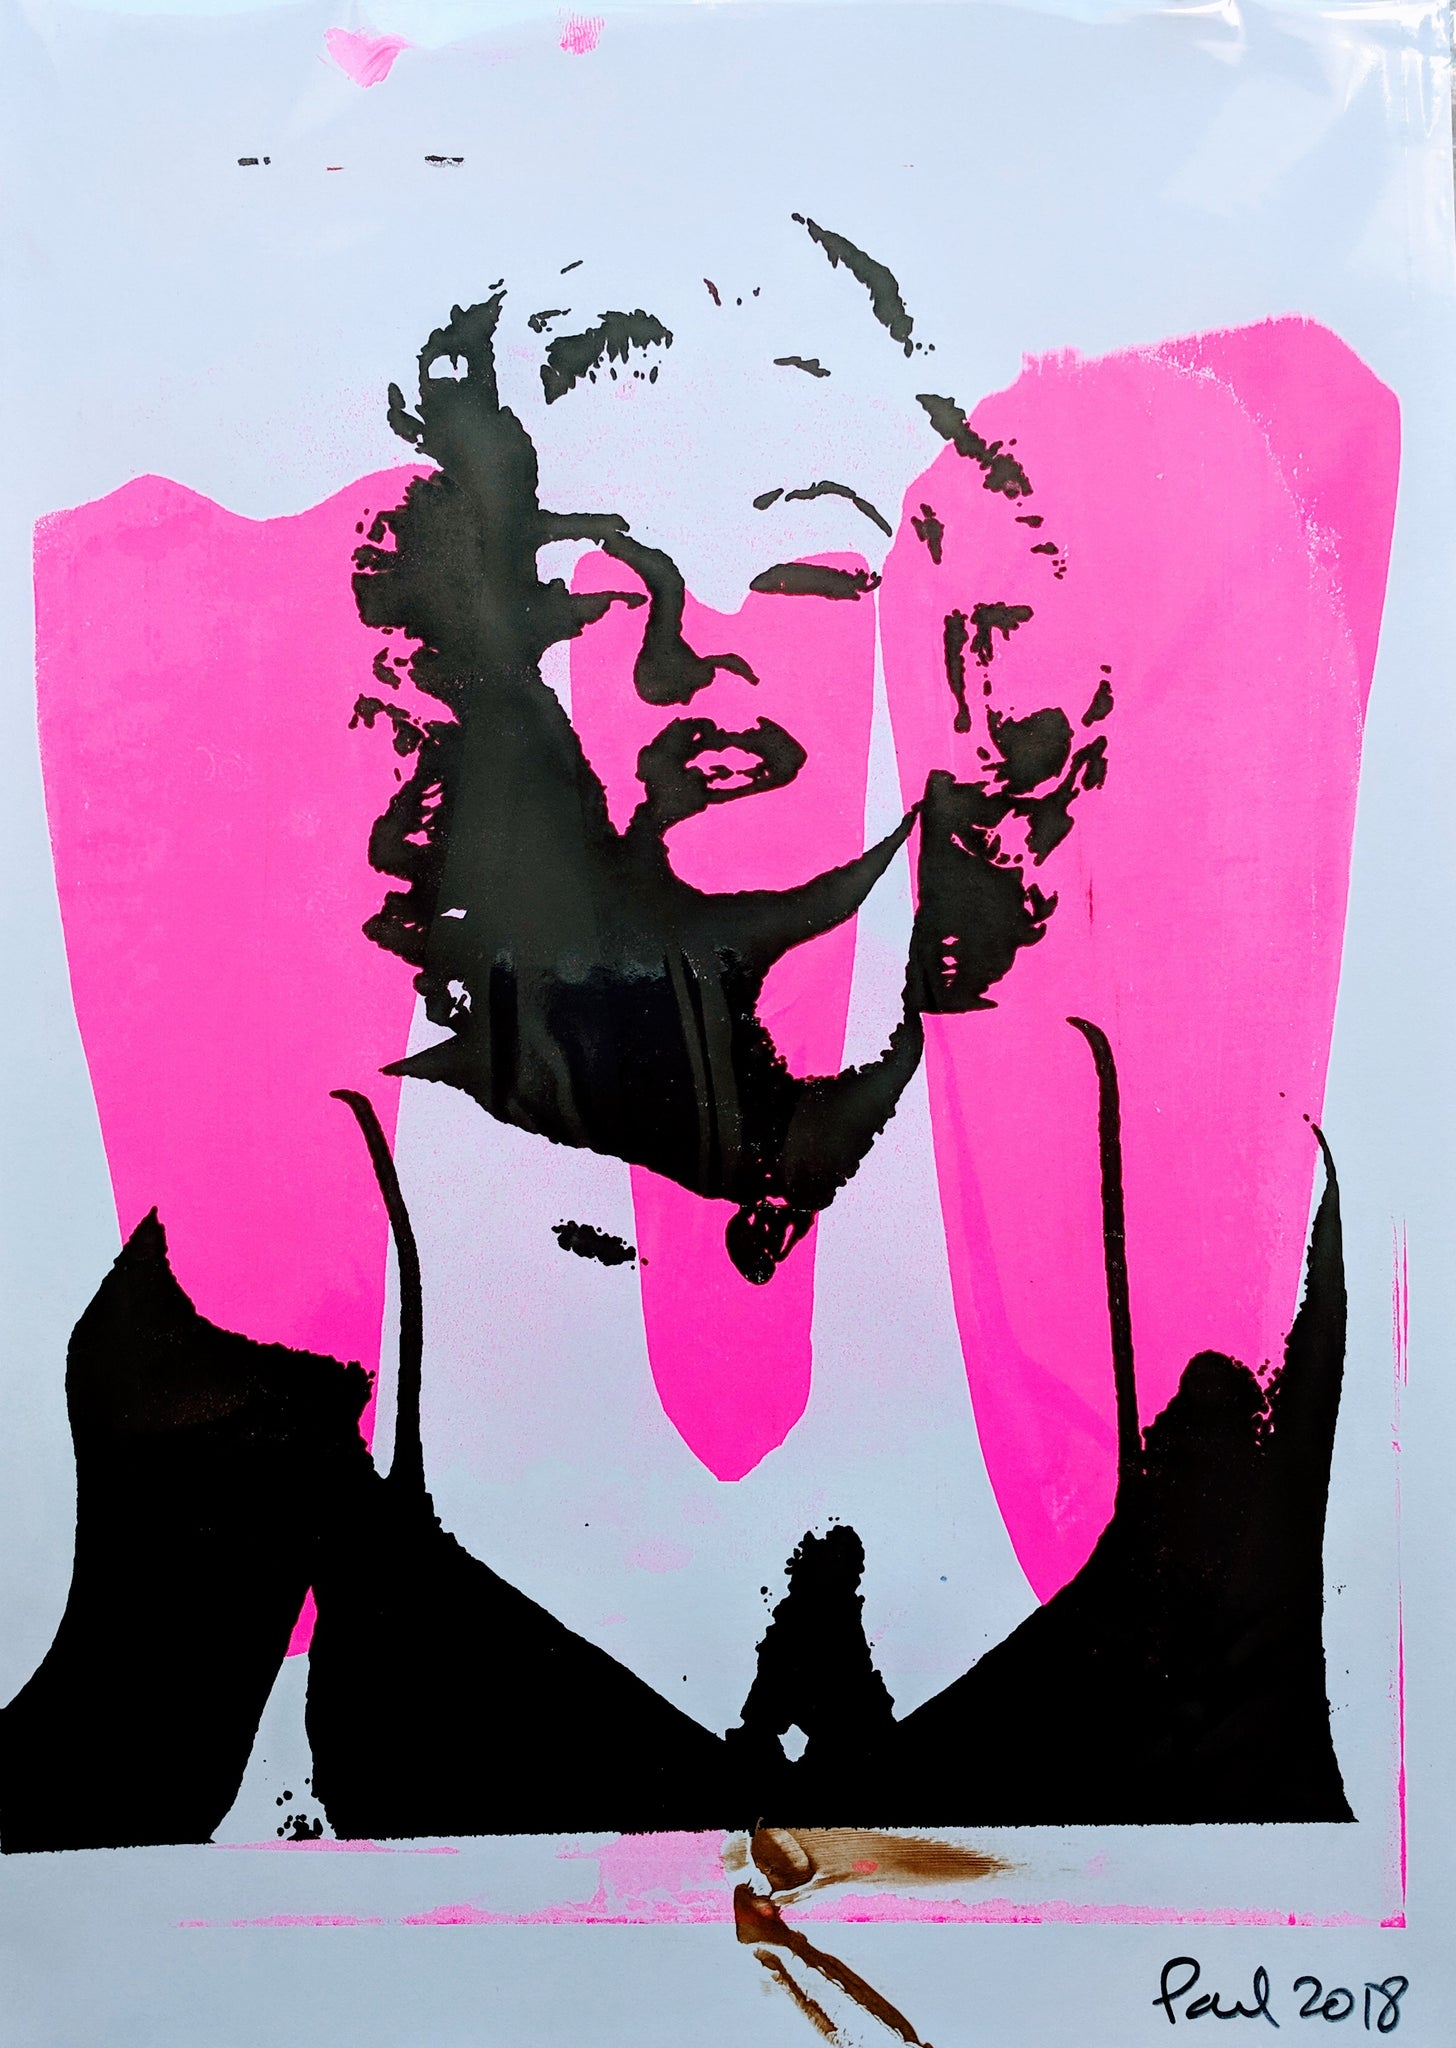 Original MARILYN MONROE screen print by Paul McNeil - A3 size - Junk Art Design @junkartdesign www.junkartdesign.co.uk